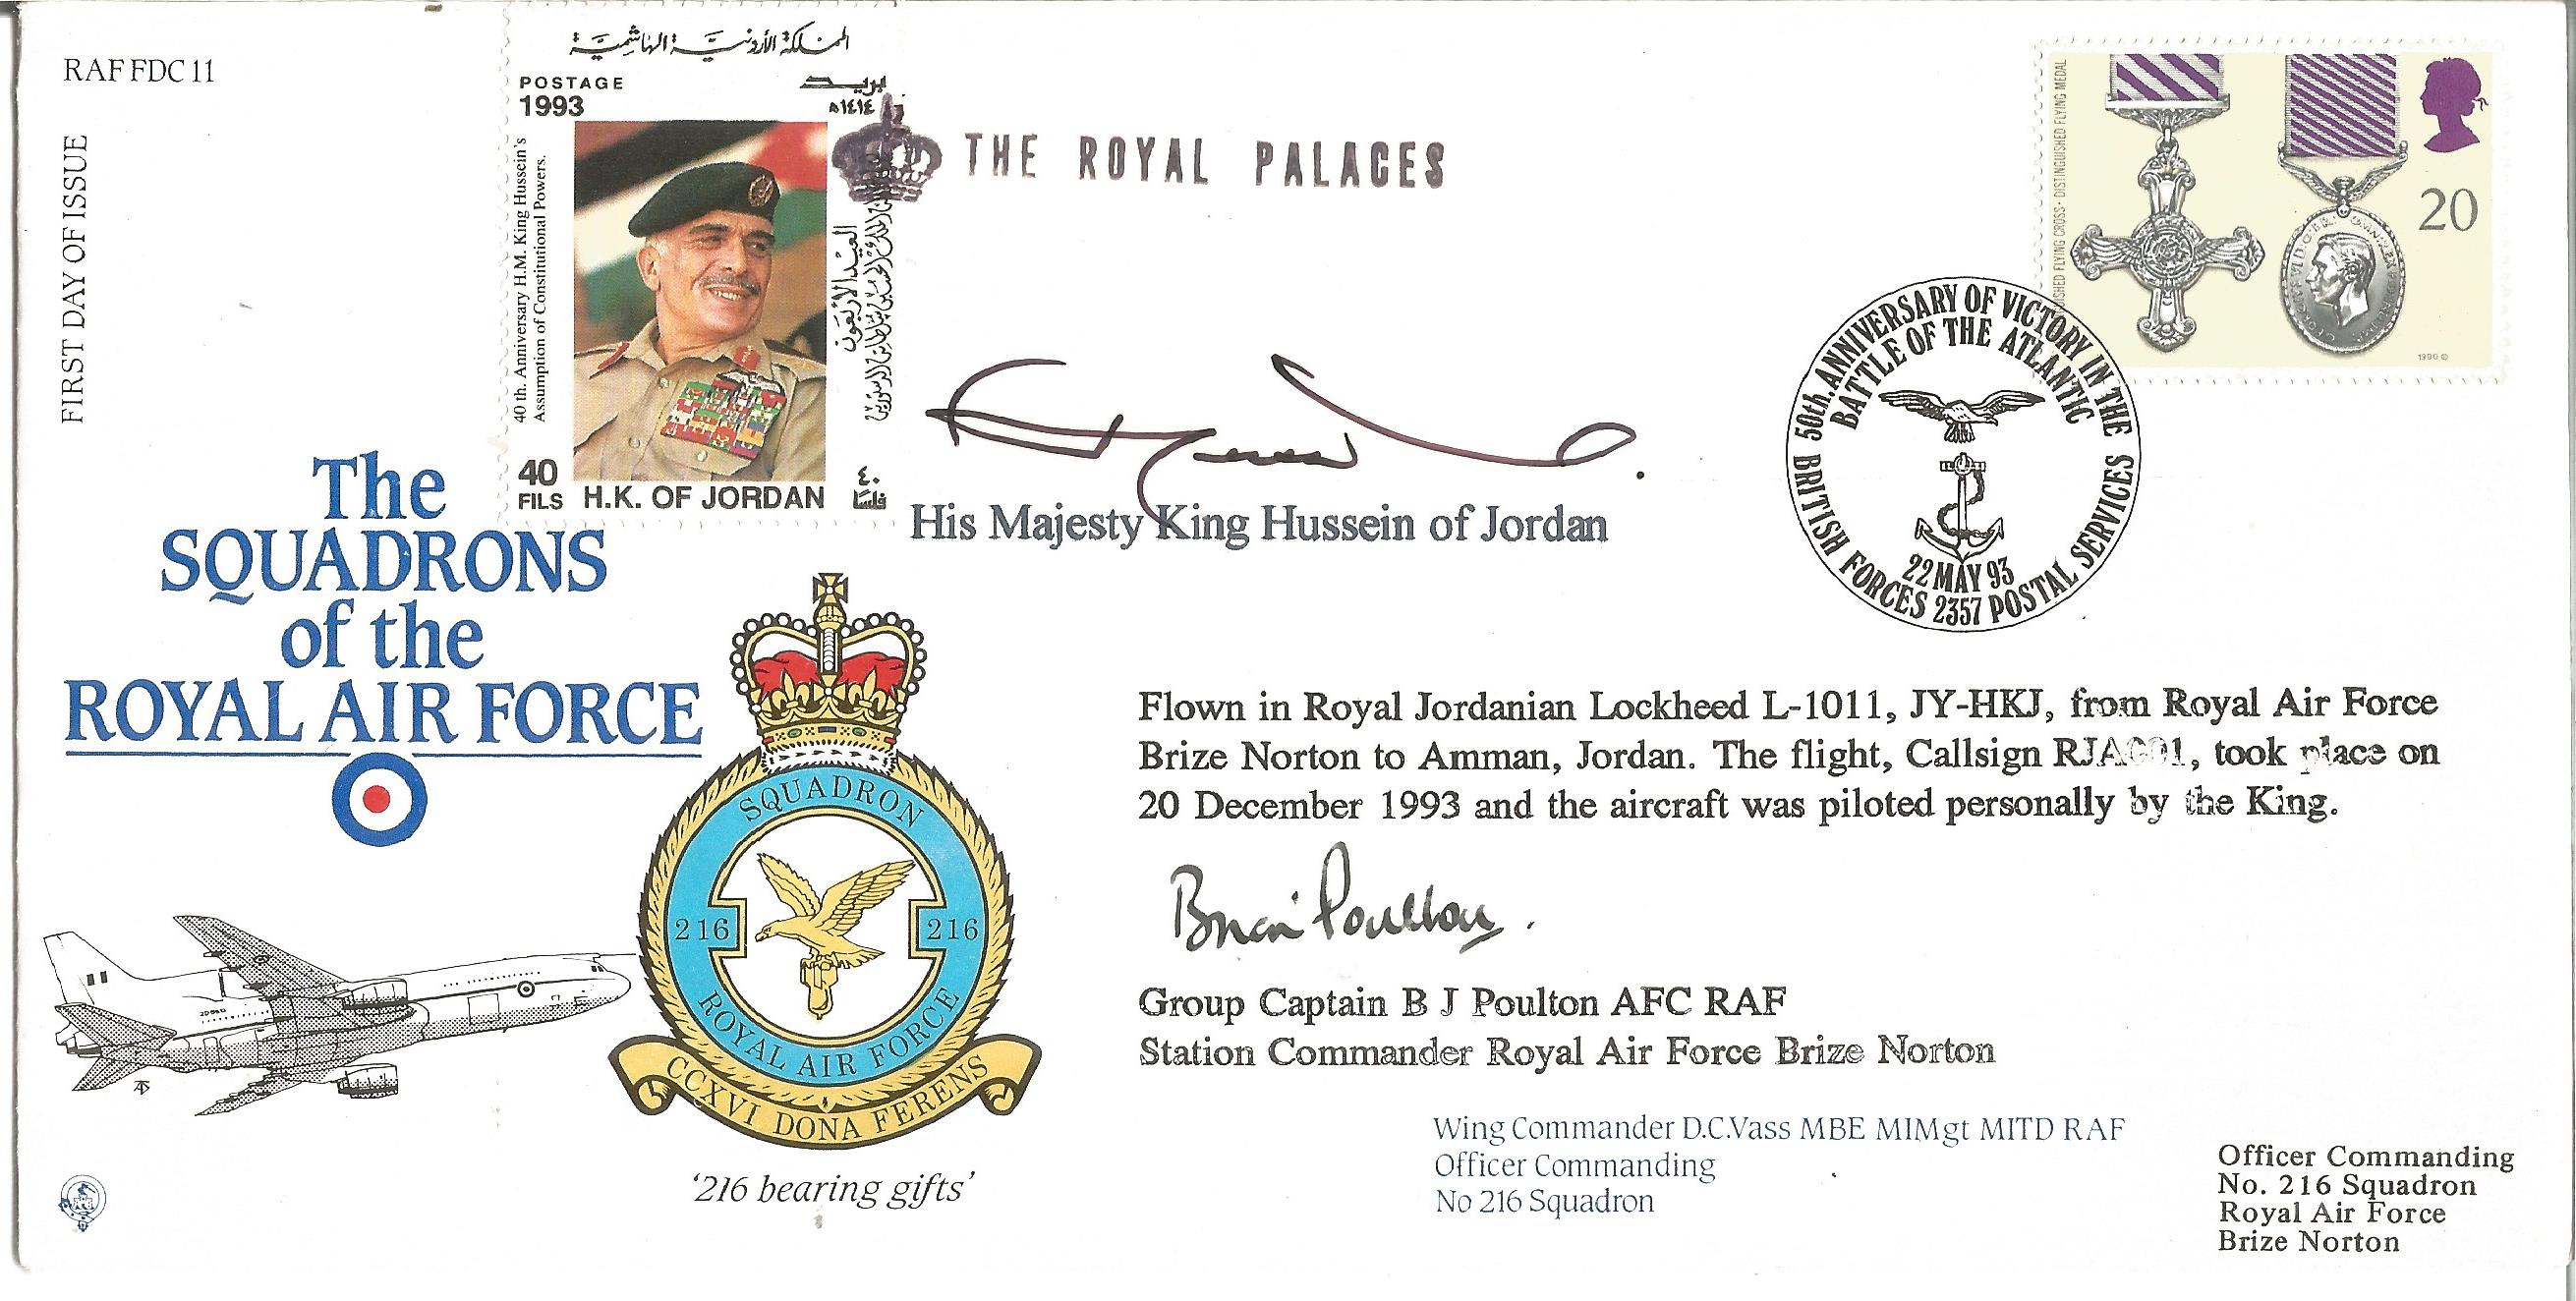 King Hussein of Jordan and Grp Cpt B. J. Poulton AFC RAF signed The Squadrons of the Royal Air Force